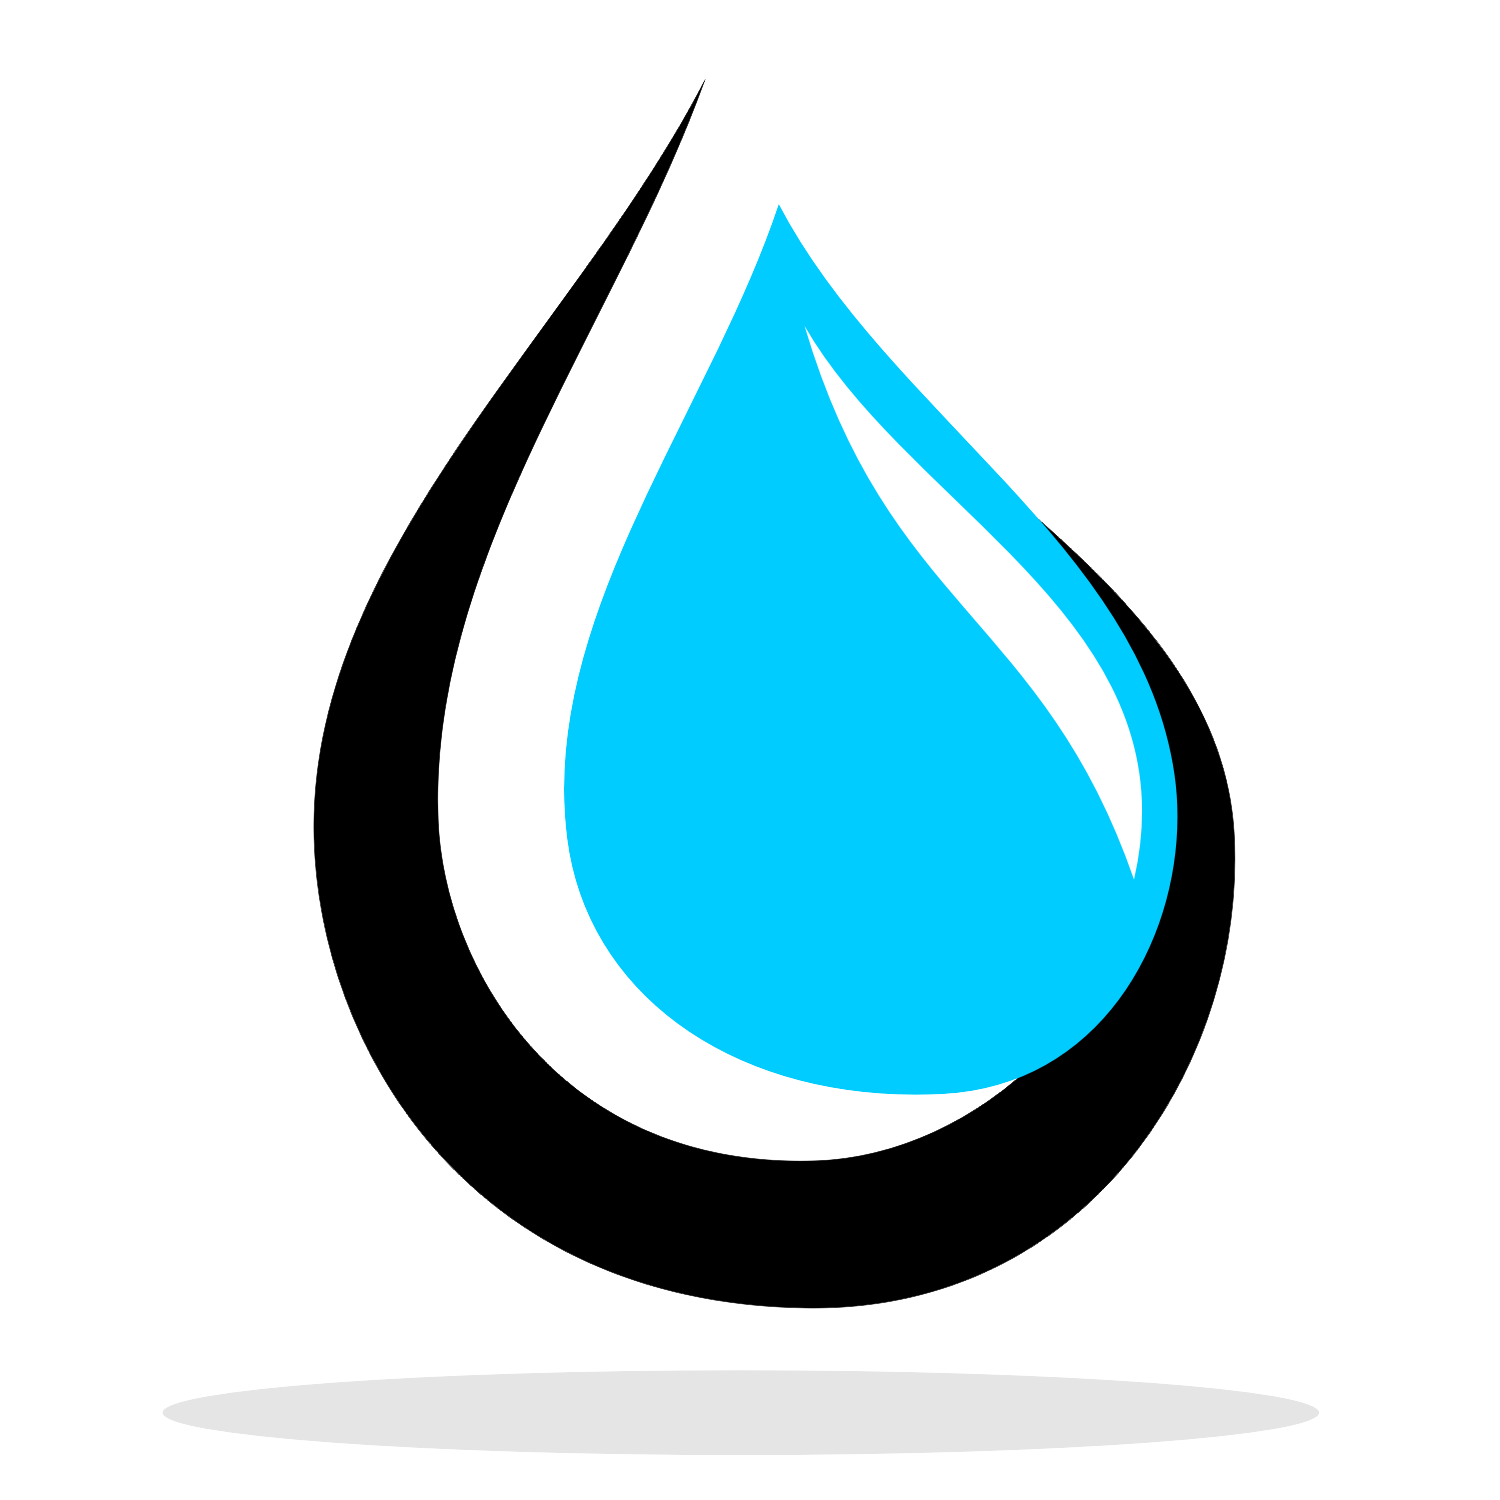 Water energy logo design ideas